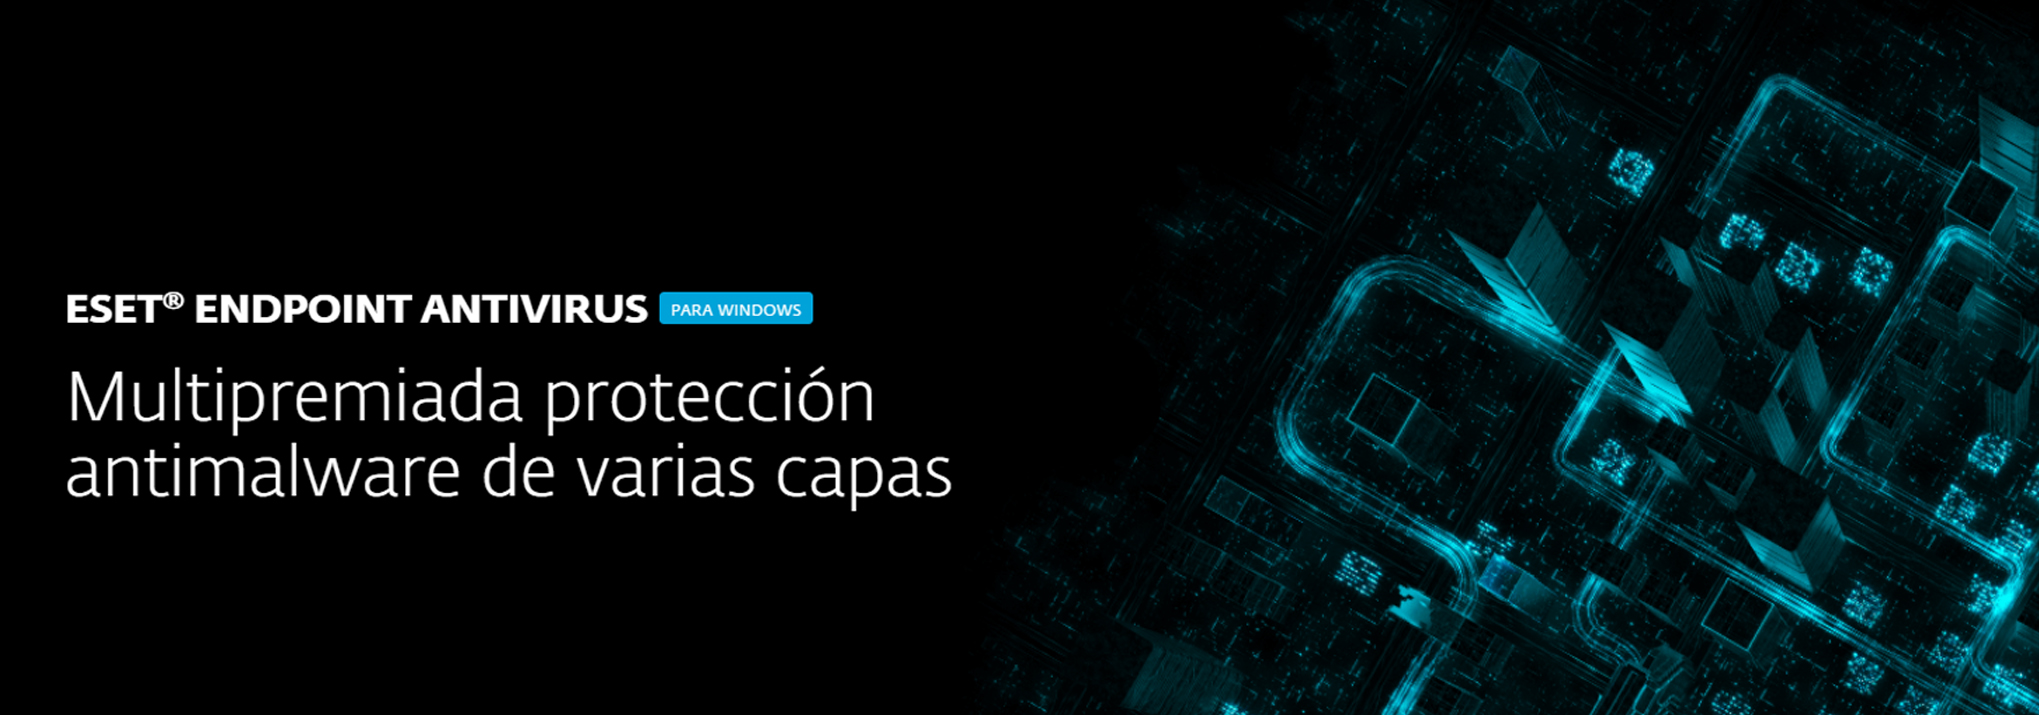 eset para windows